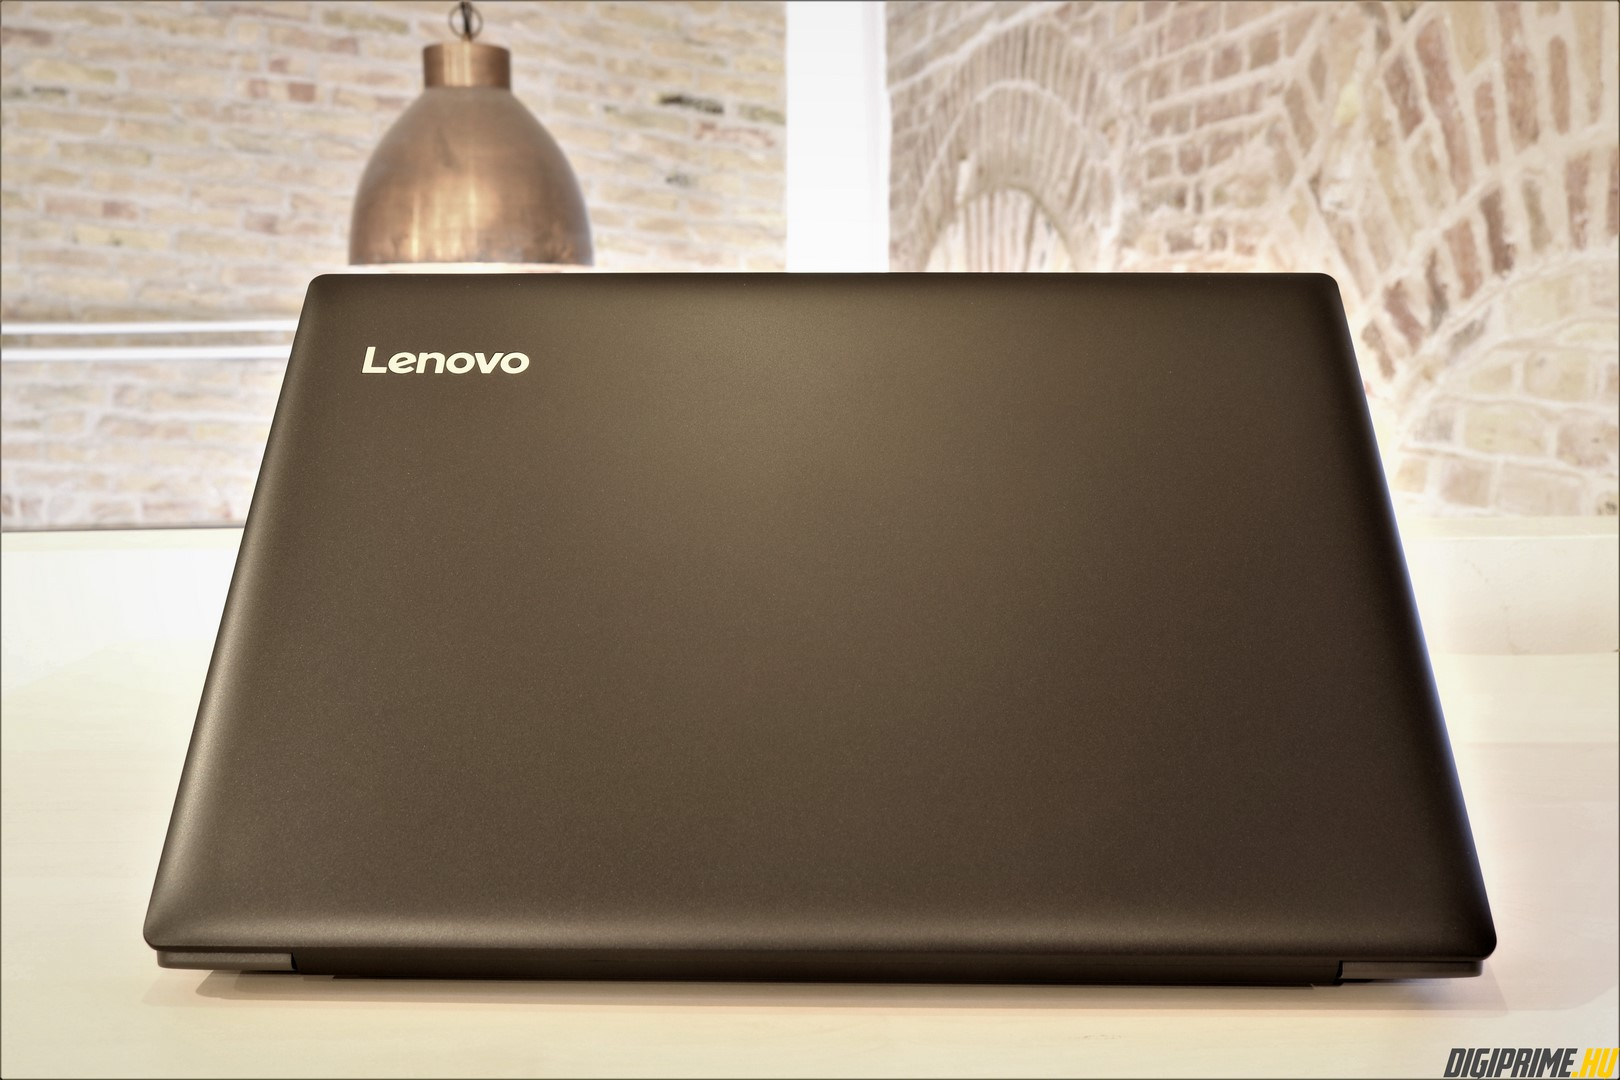 lenovo ip 330 12 digiprime.hu